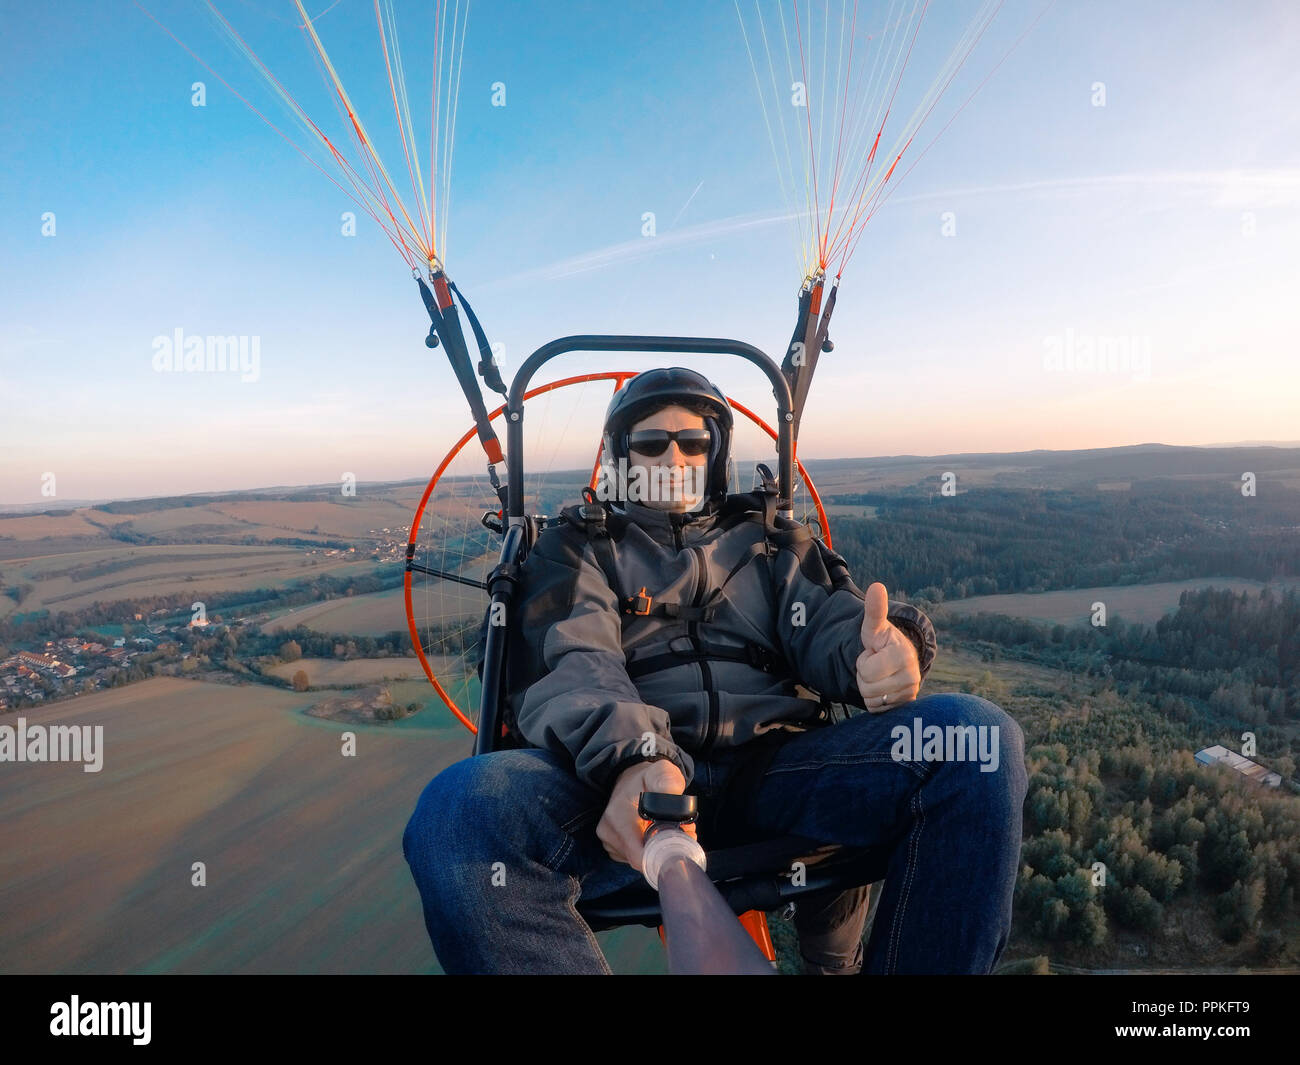 Paramotor Trike Stock Photos & Paramotor Trike Stock Images